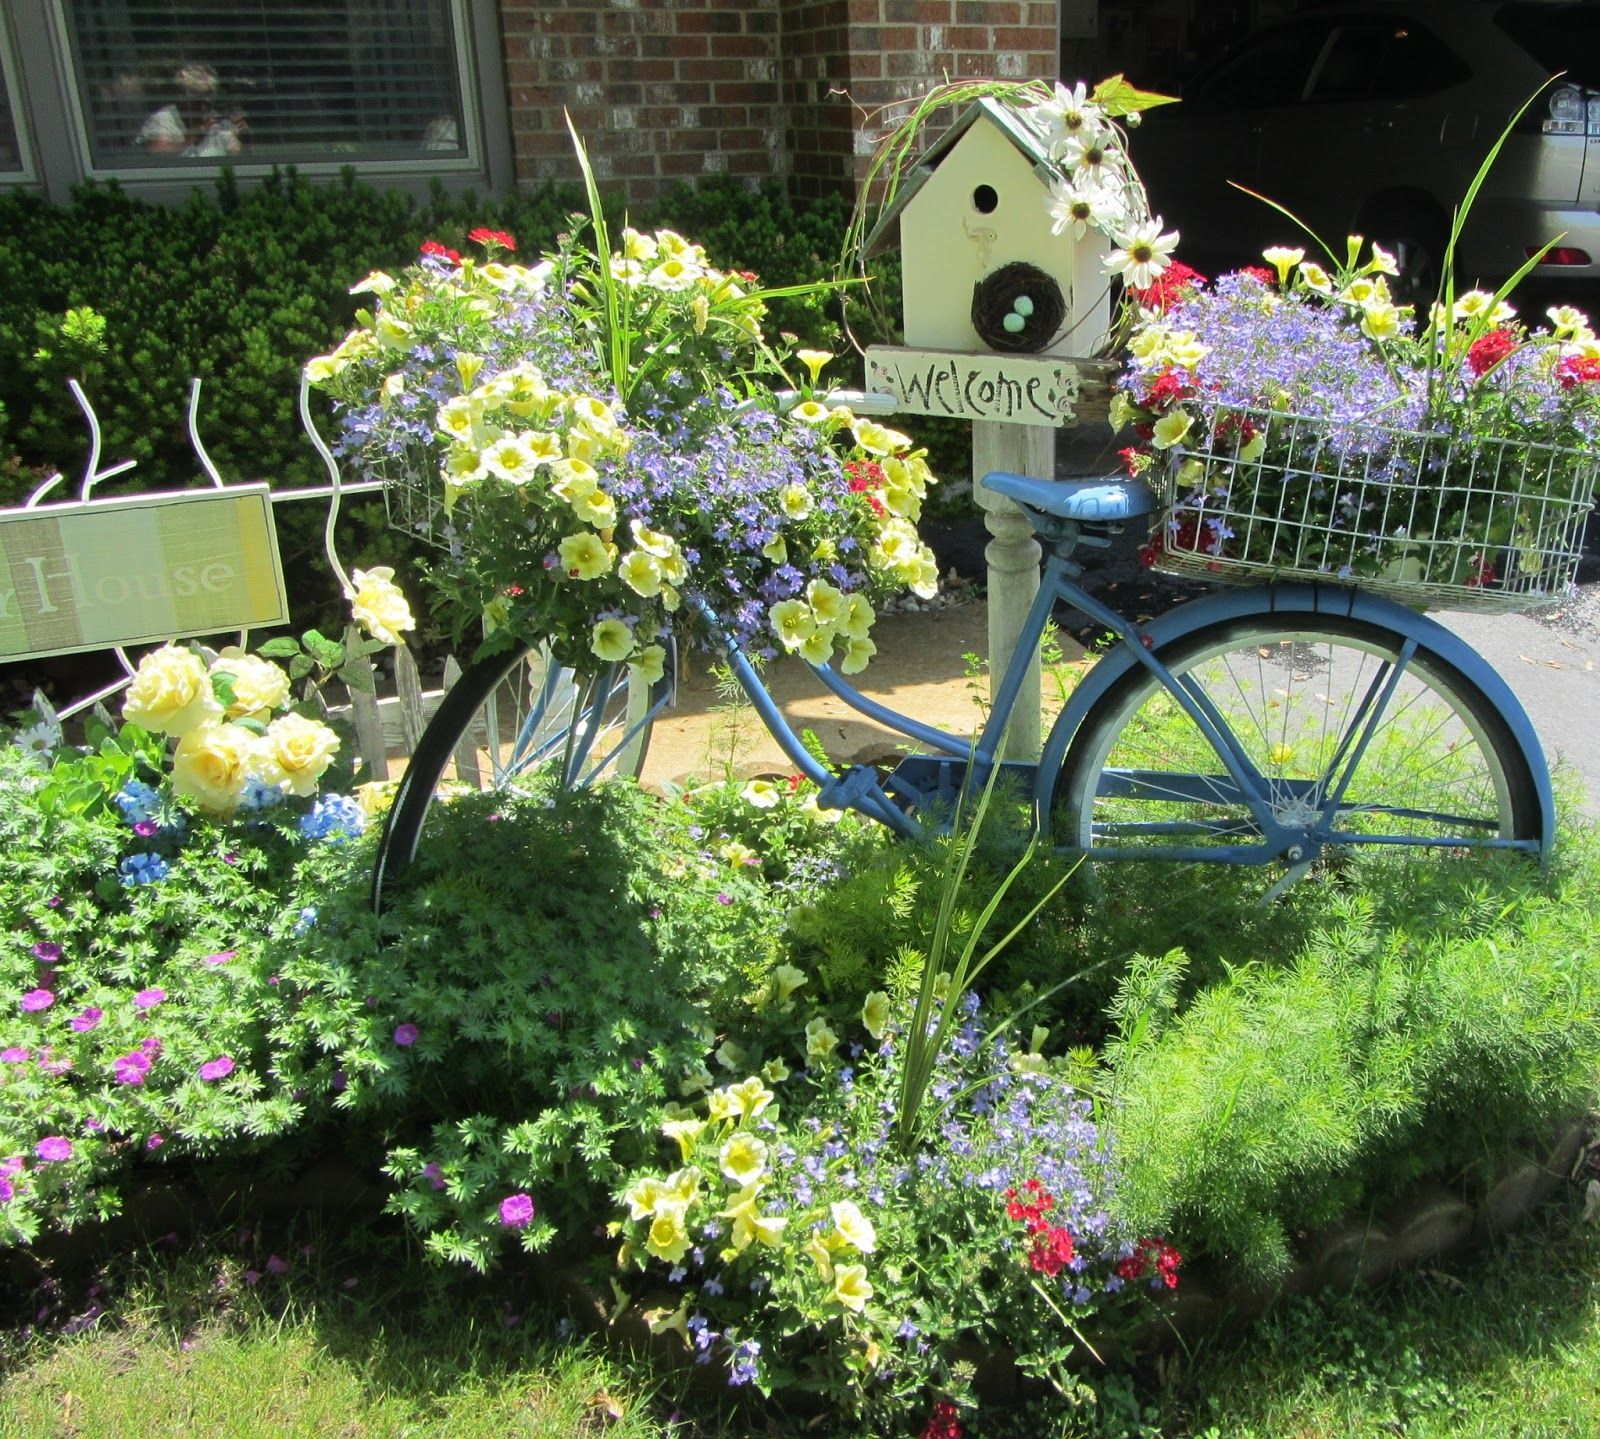 30 Unique Garden Design Ideas: Repurpose Old Bike As Flower Garden